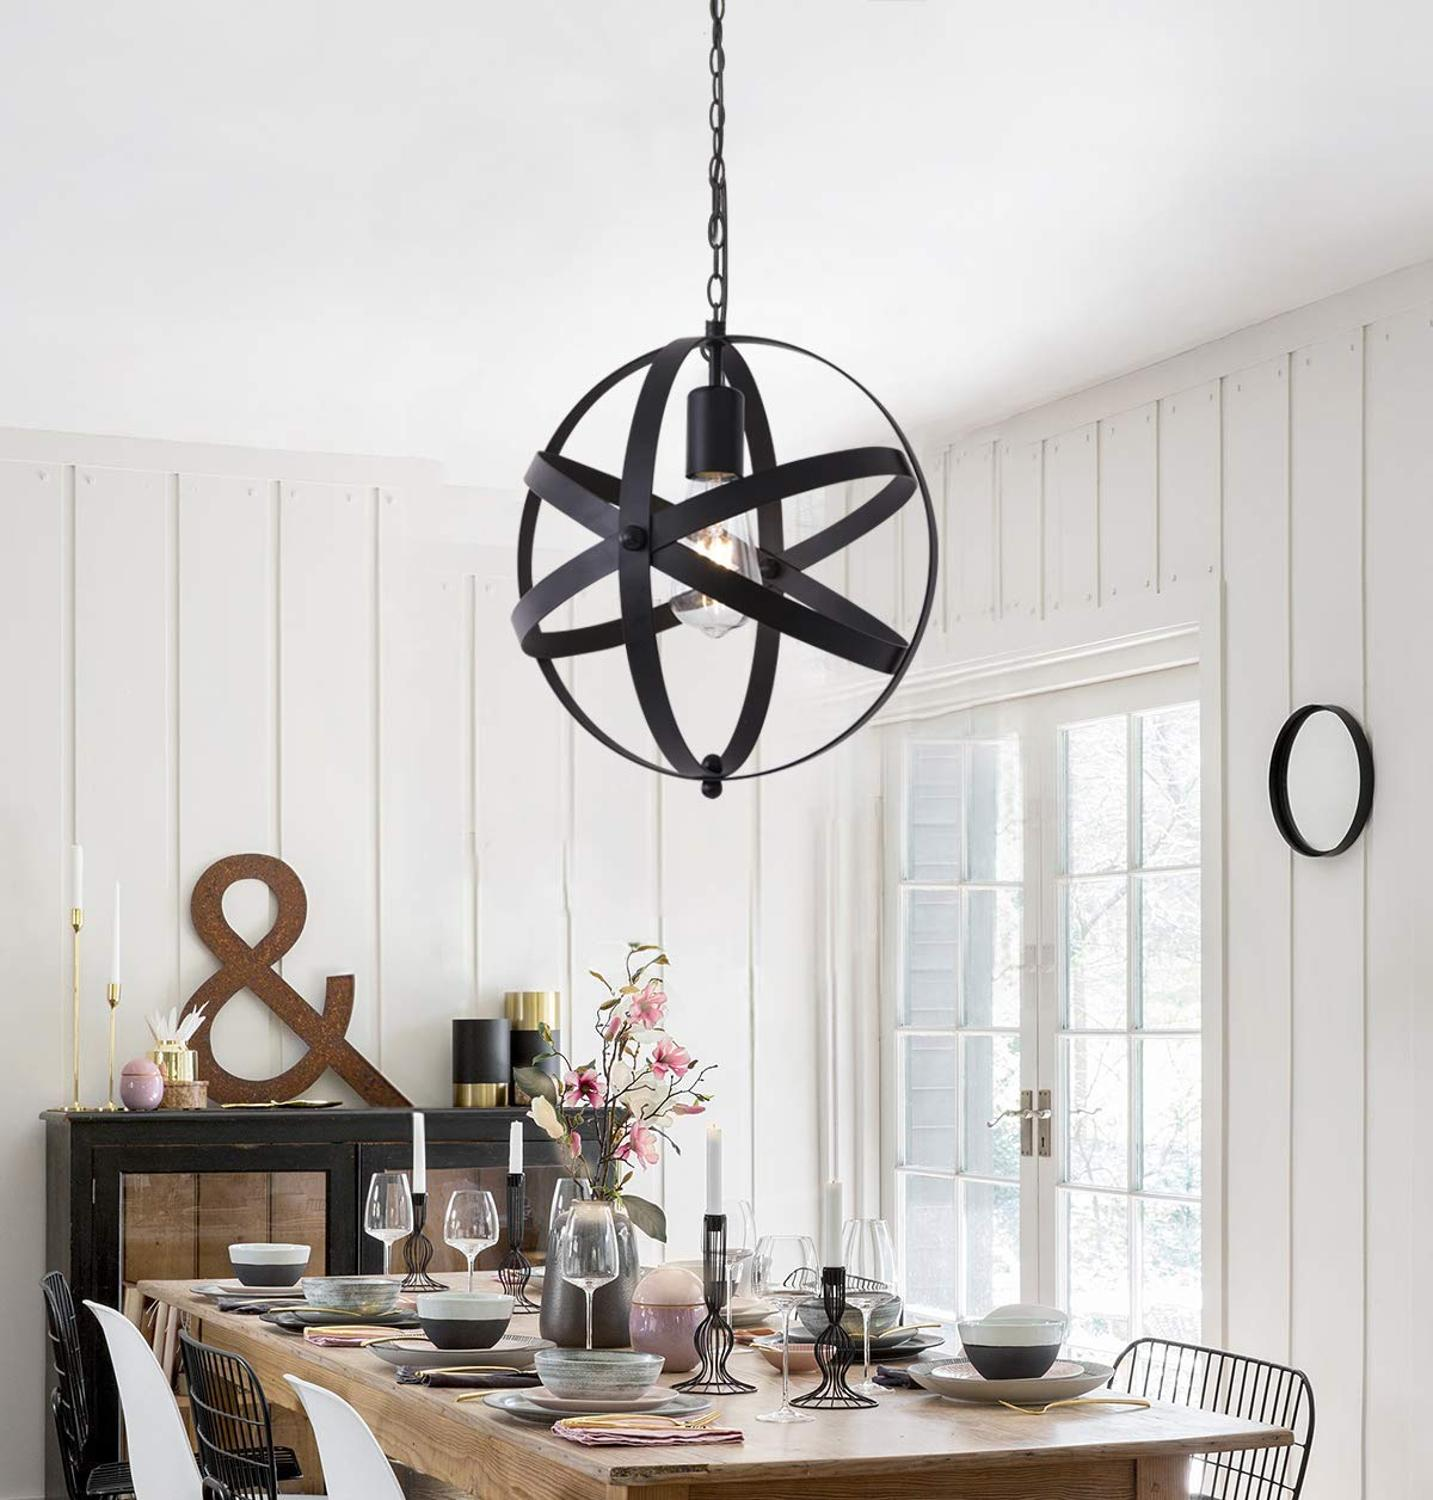 Pendant Light Ganeed Plug In